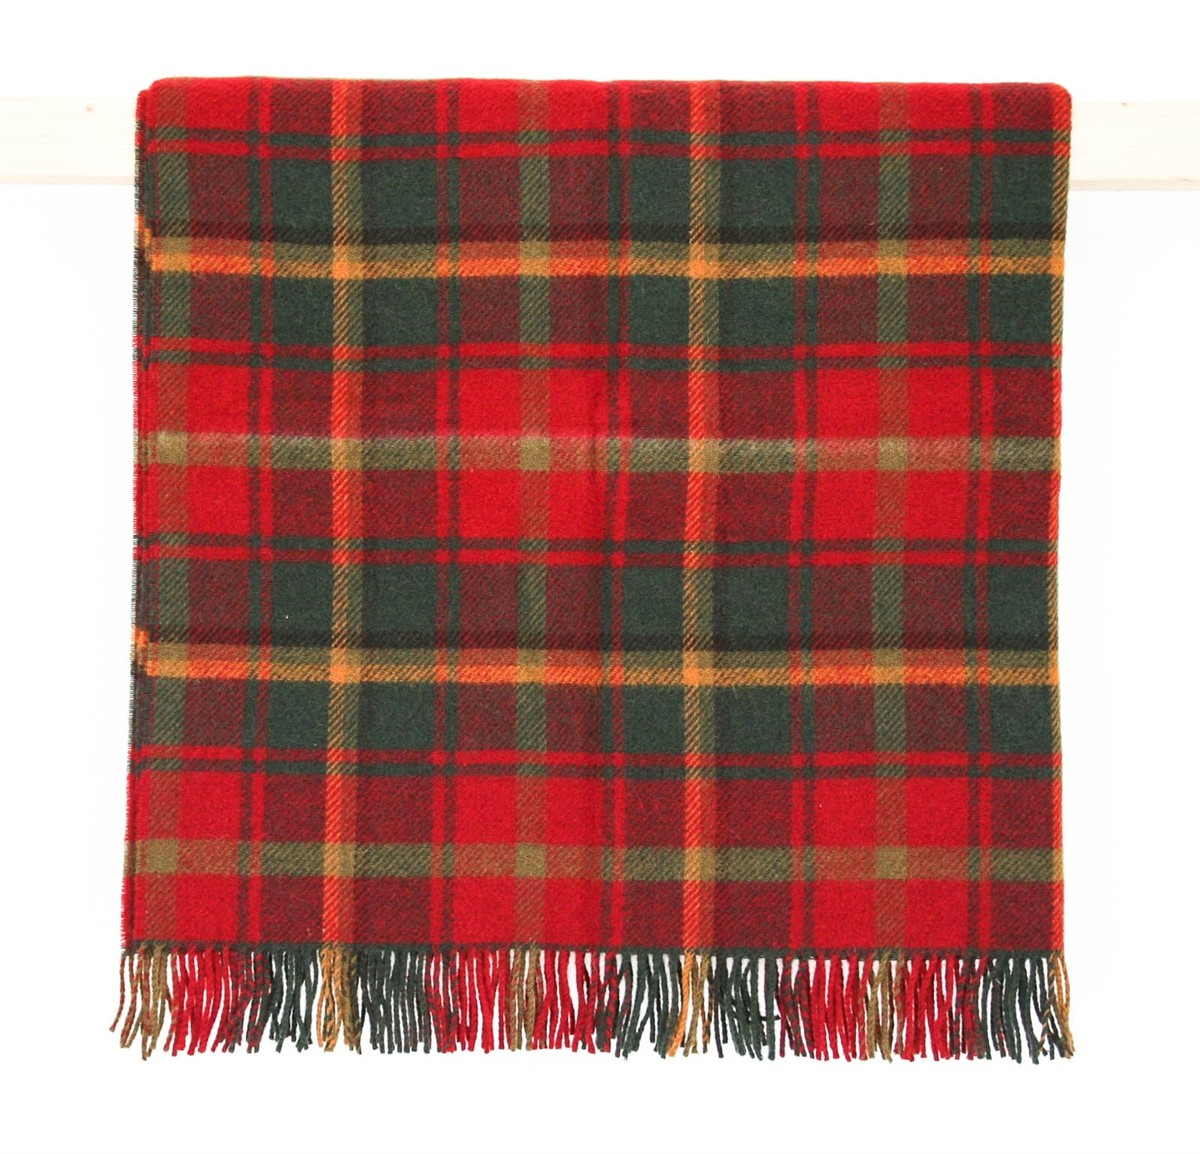 Wool Blanket Online British Made Gifts Dark Maple Tartan